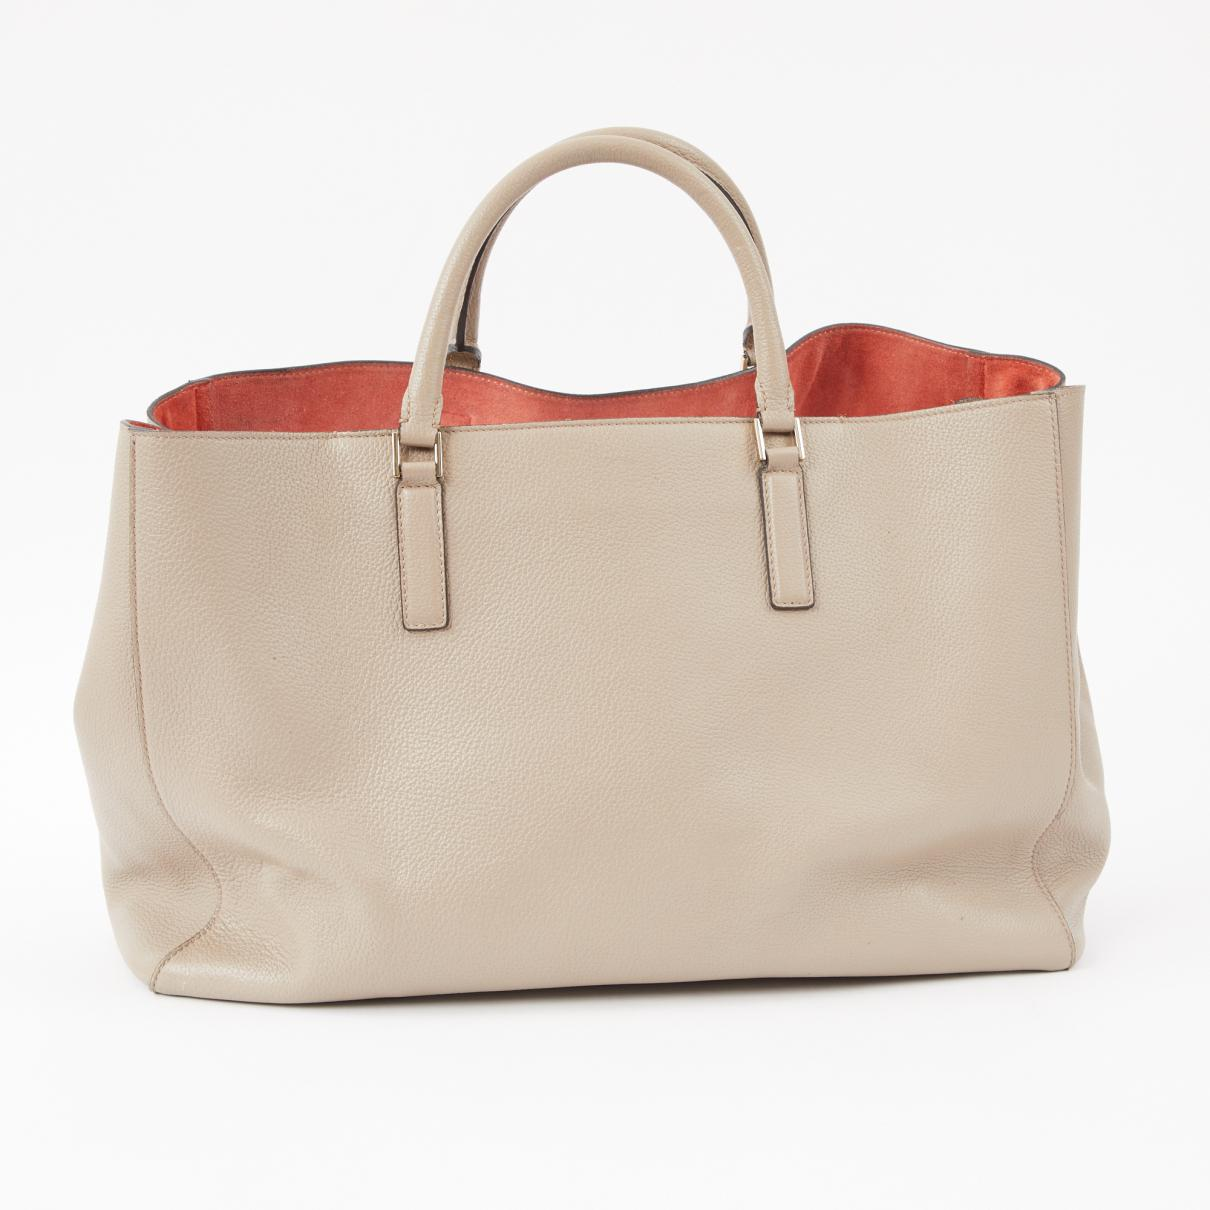 Anya Hindmarch Pre-owned - Ebury Maxi leather bag gPeUOxL